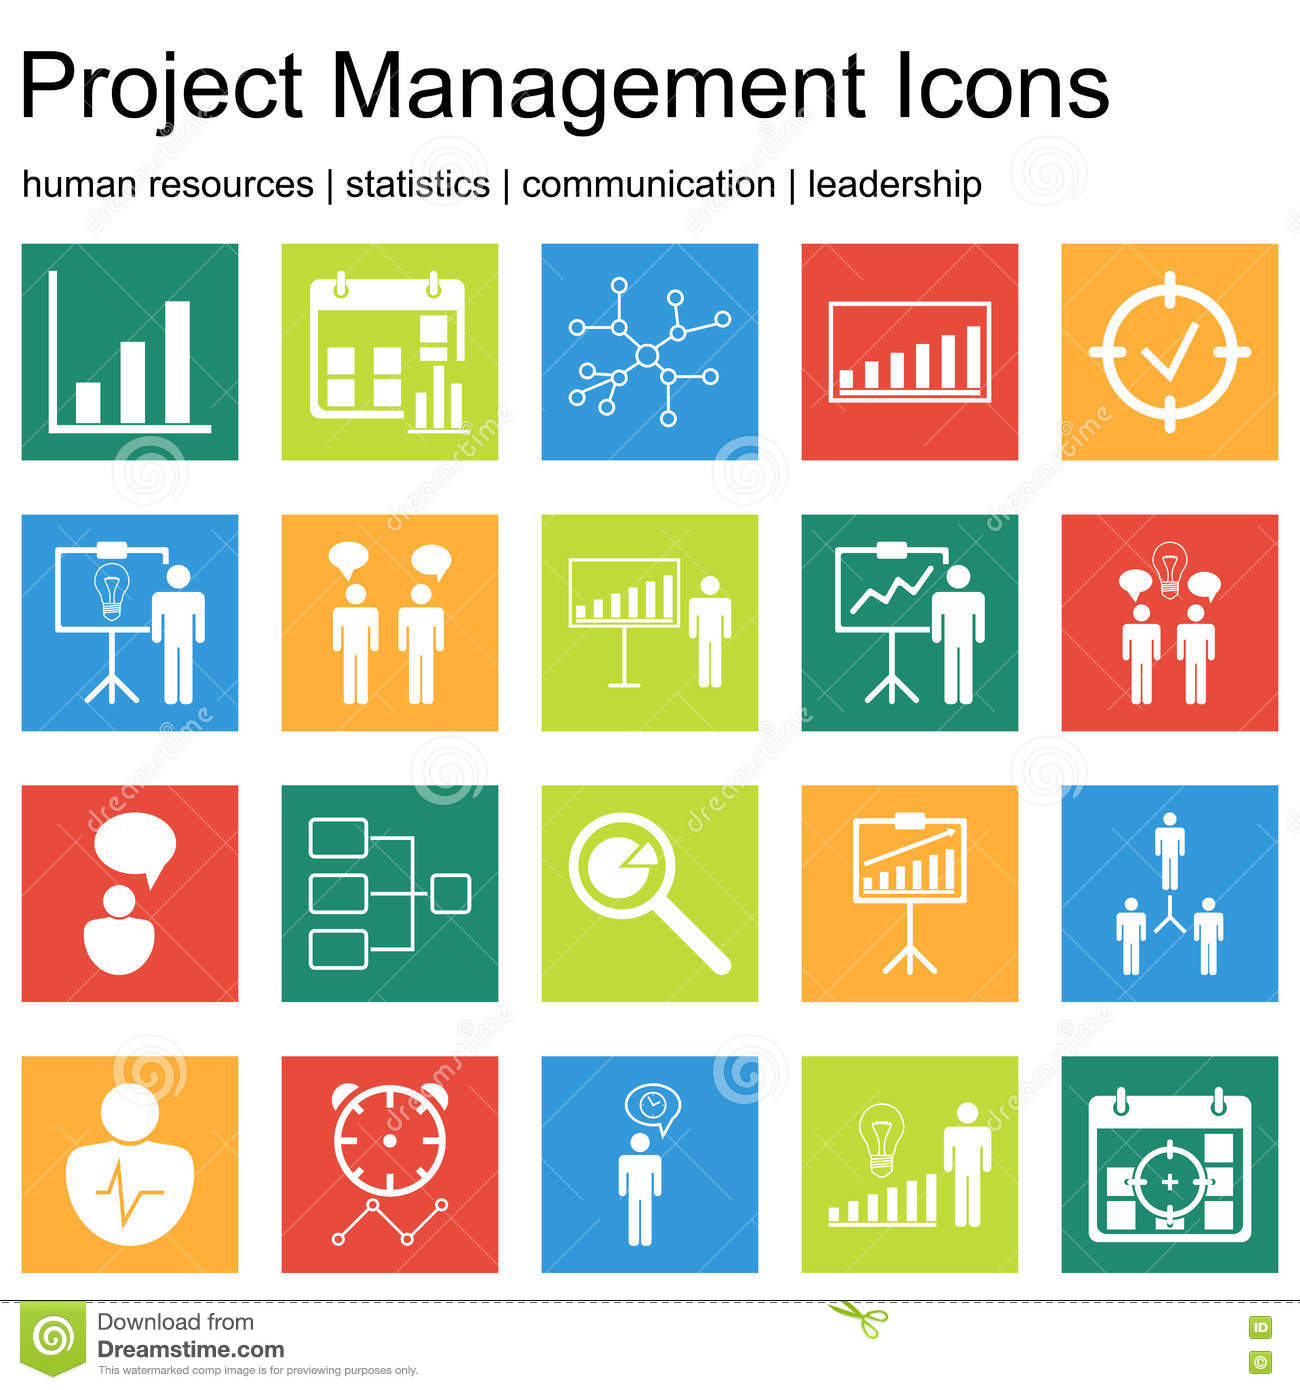 Project management websites